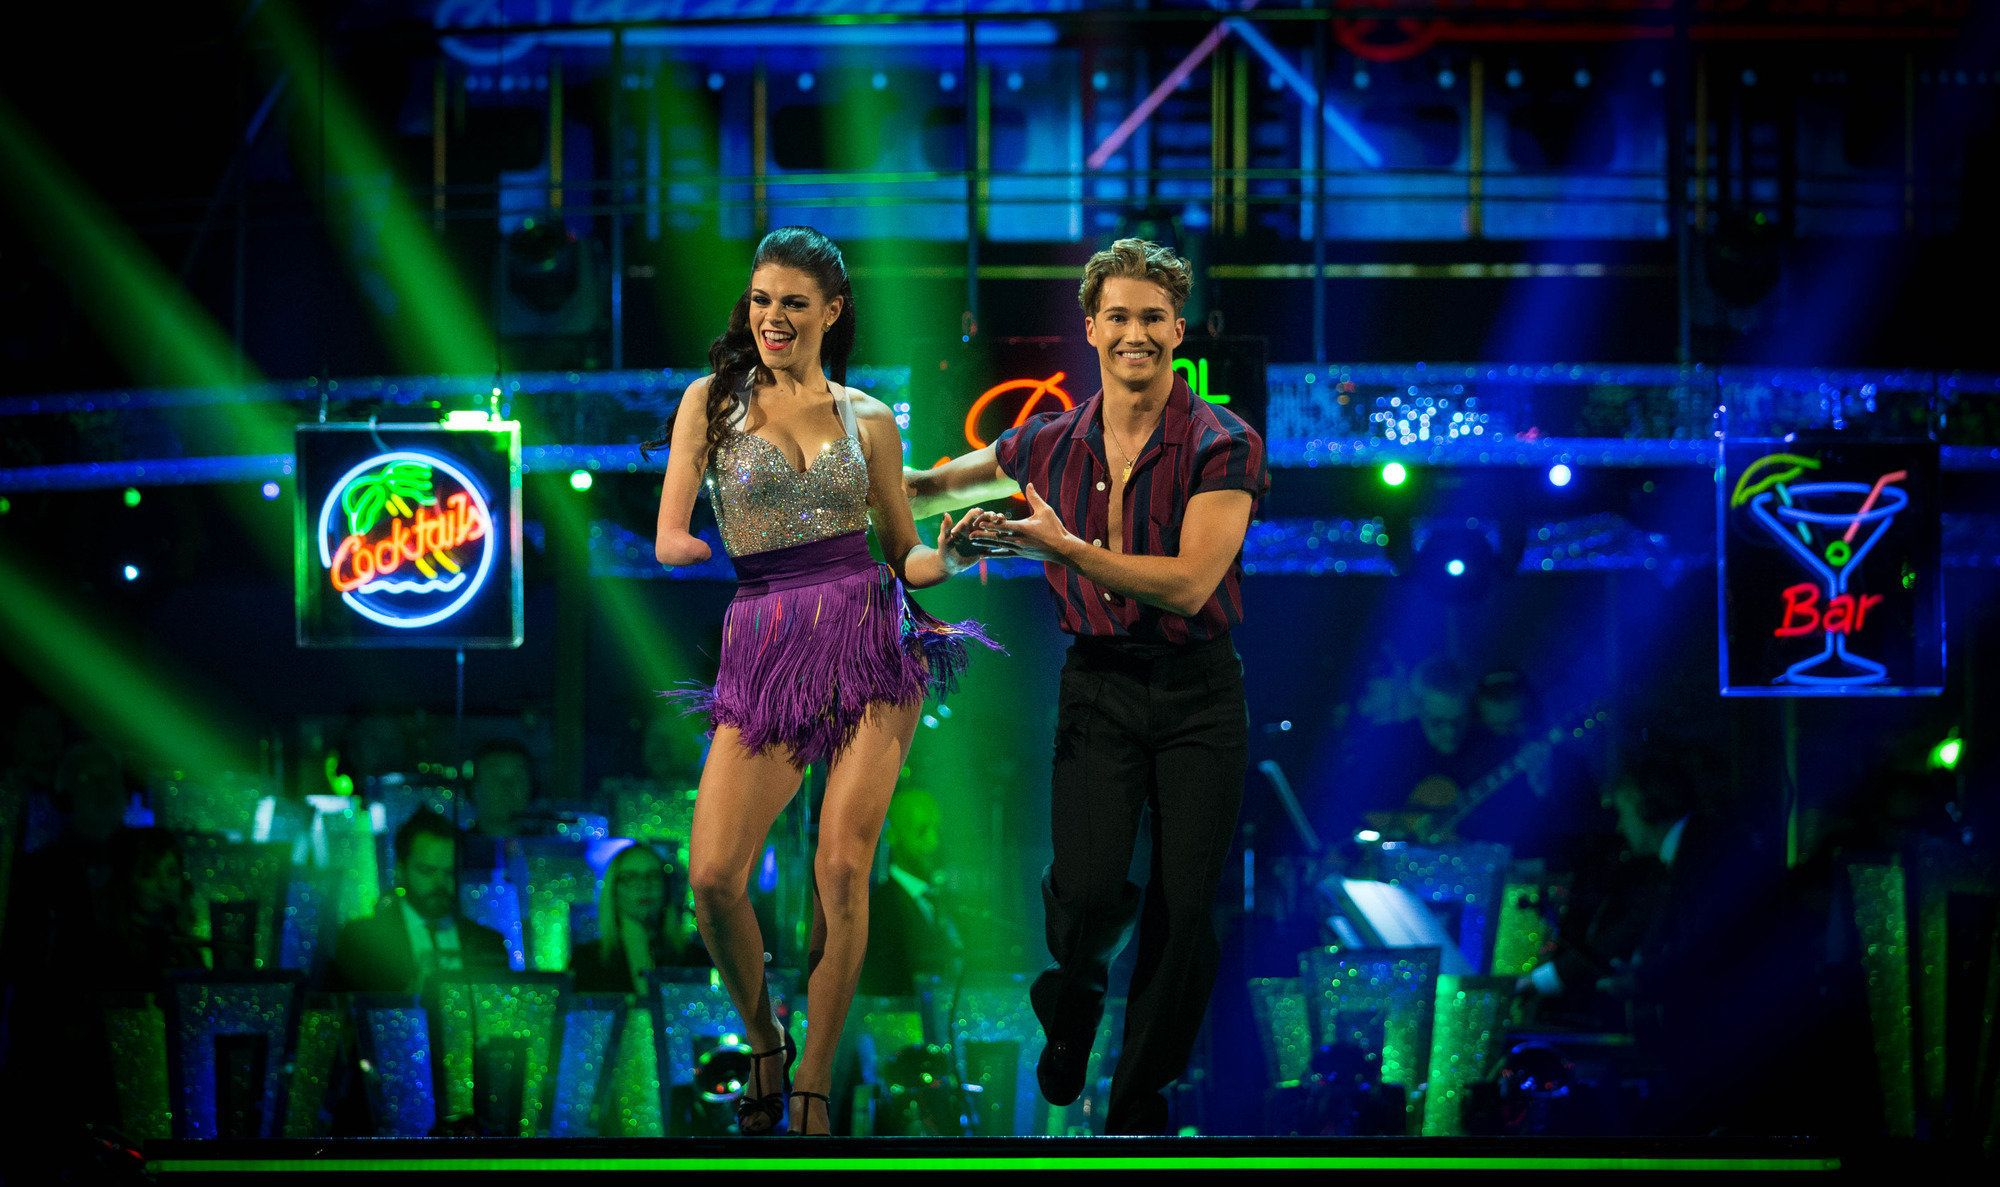 Lauren Steadman is the eleventh celebrity to leave Strictly Come Dancing 2018